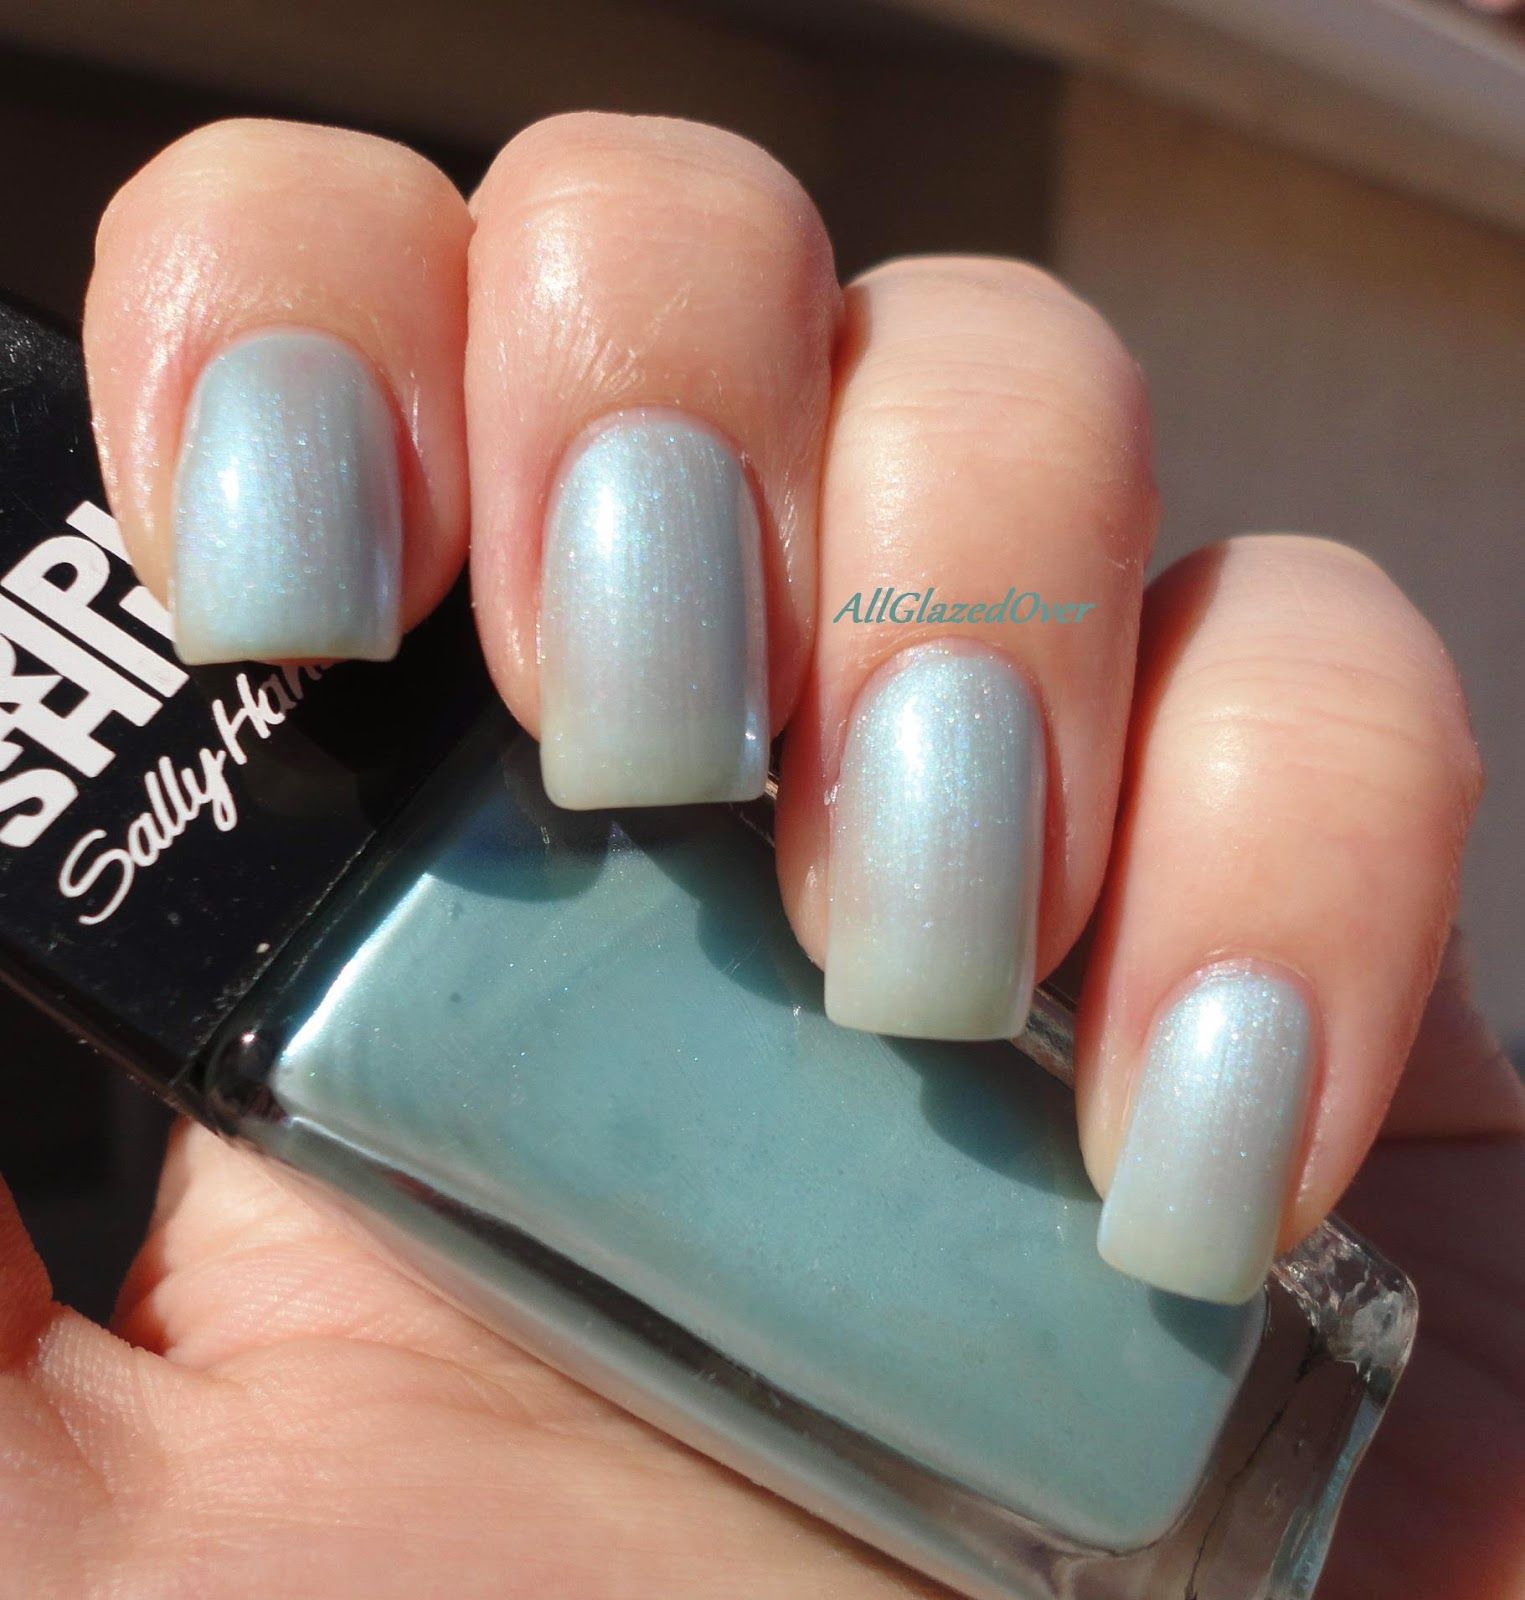 Party Favor - Vivid Teal Holographic Nail Polish by ILNP